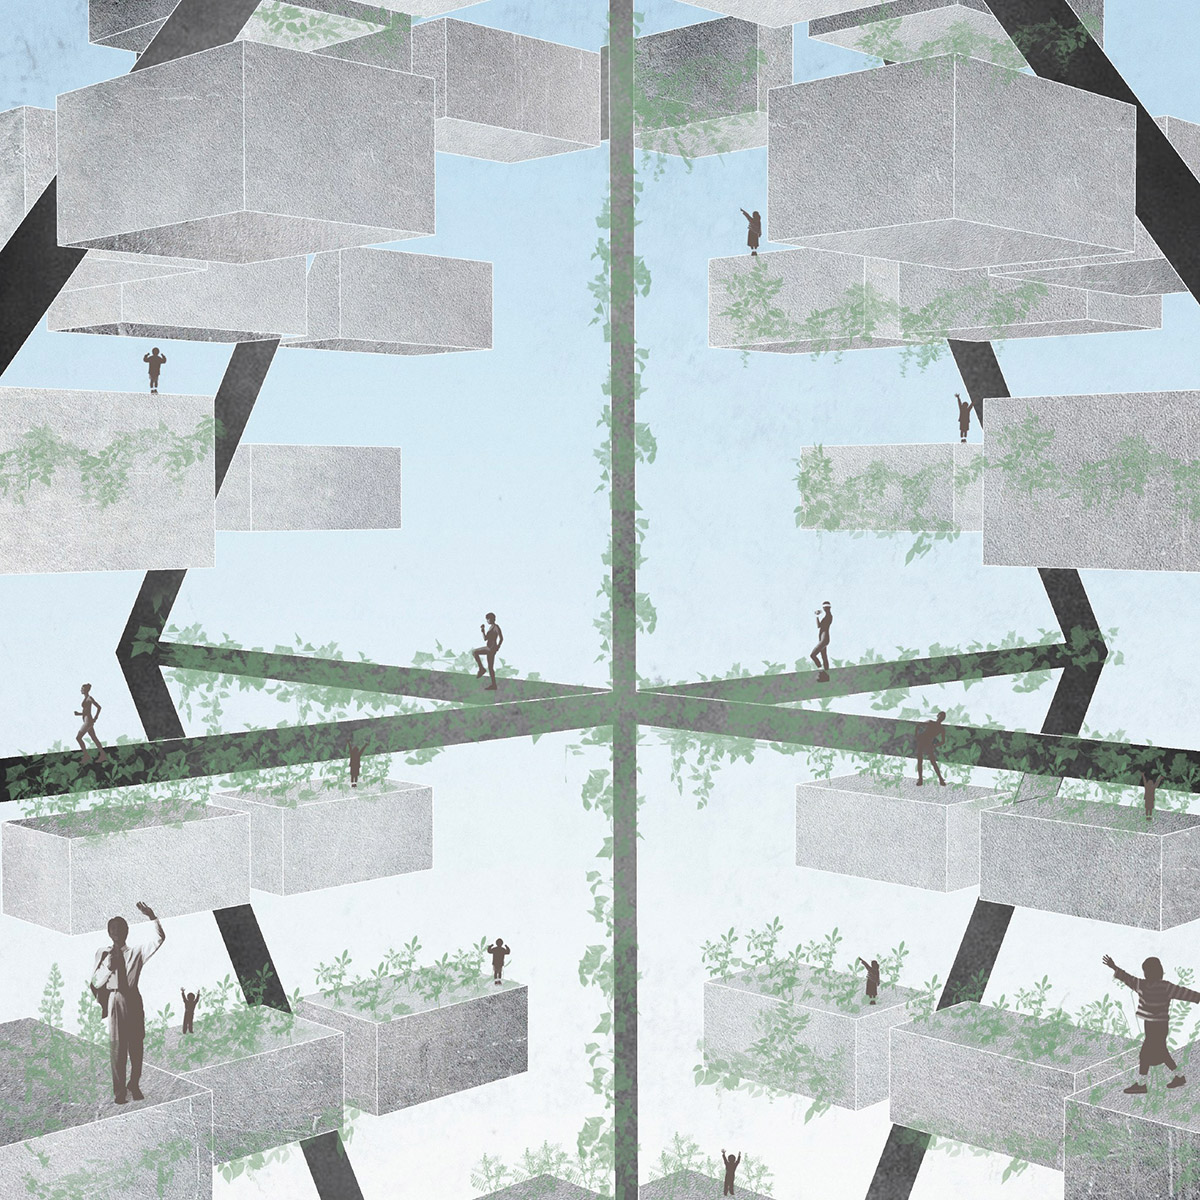 Study perspective of the spaces shared between volumes in the vertical city by student Brennan Richards